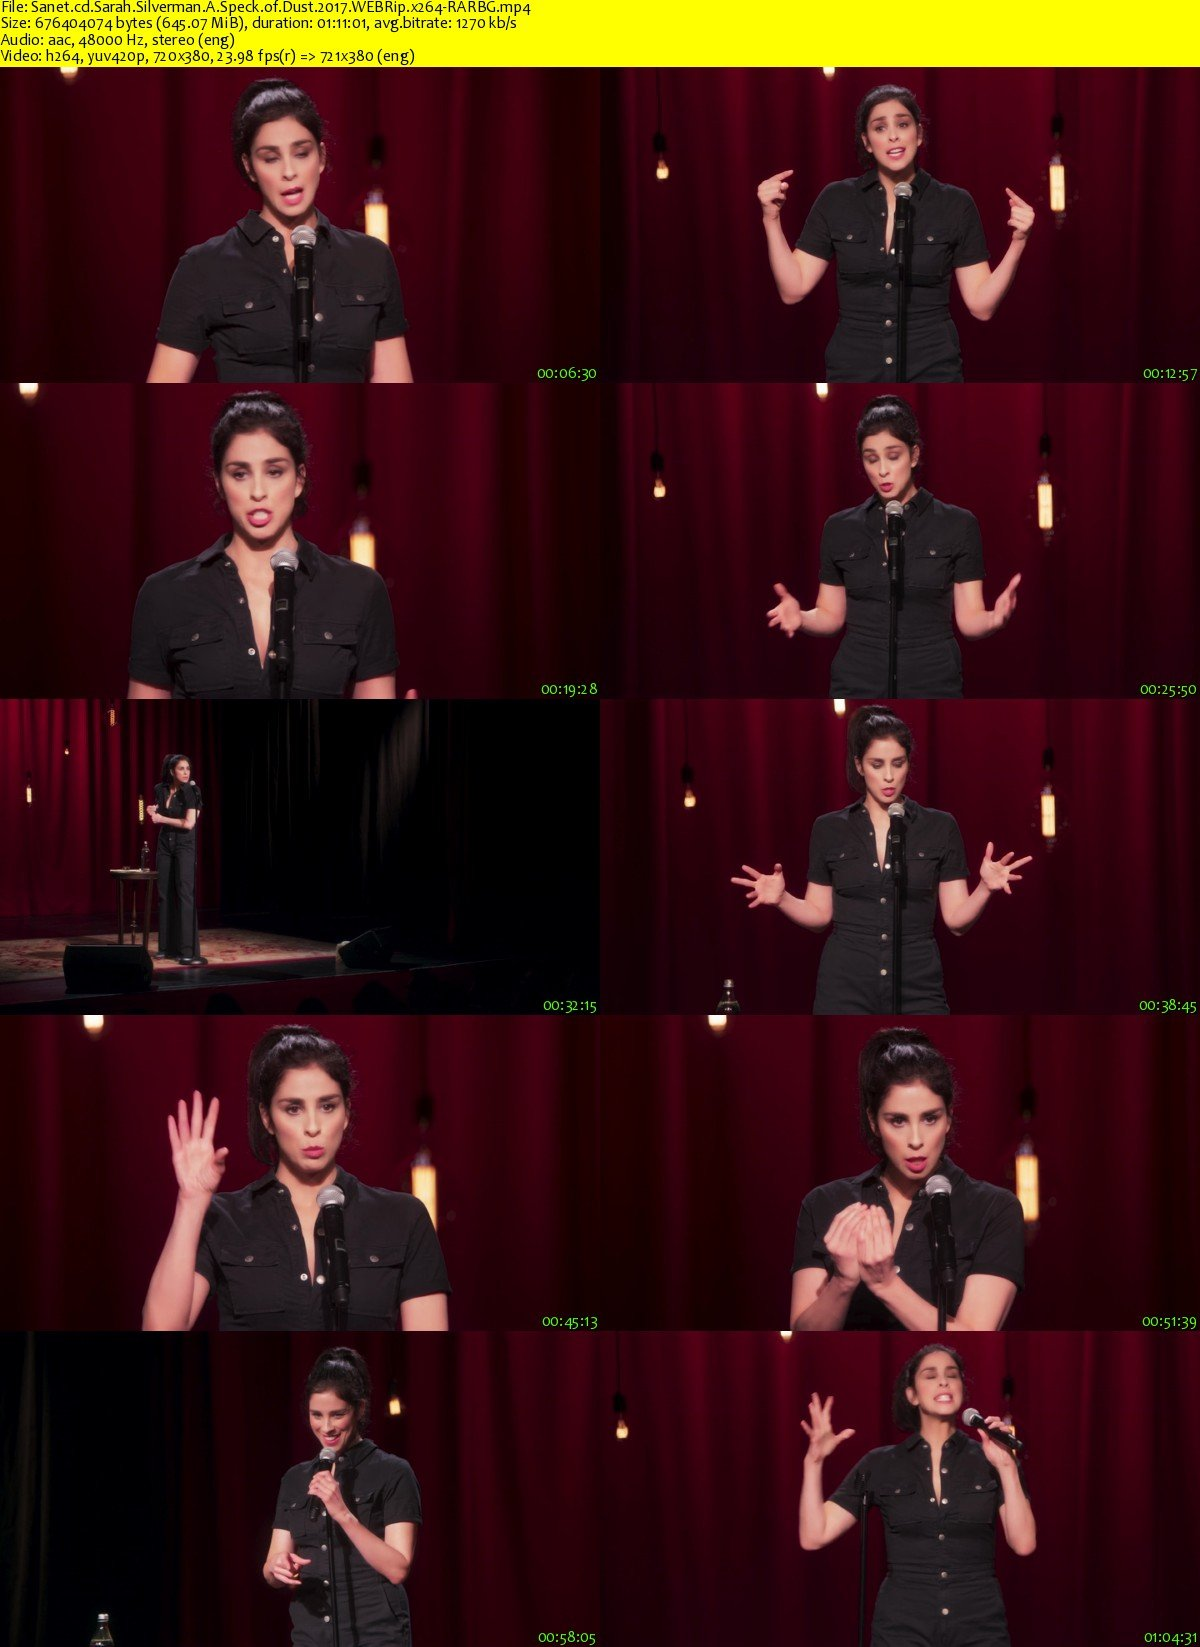 Download Sarah Silverman A Speck of Dust 2017 WEBRip x264 ...